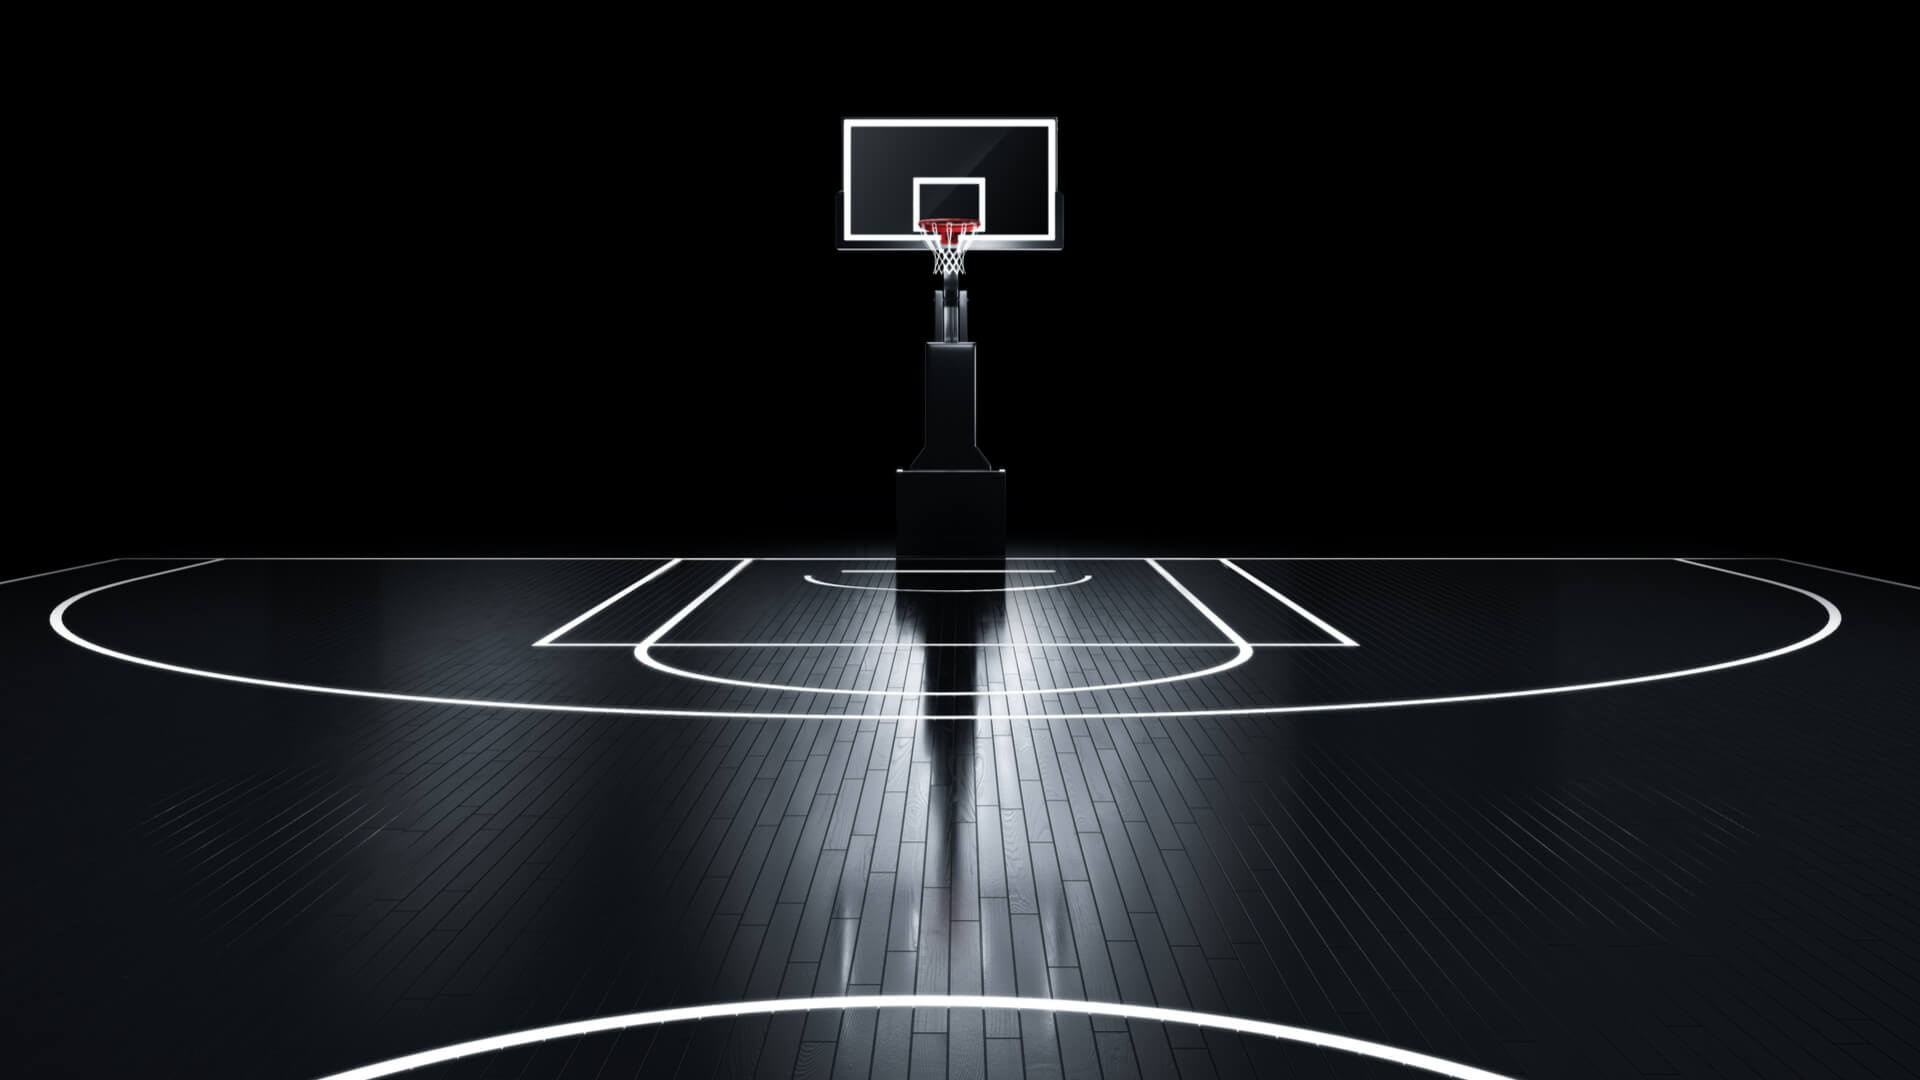 Basketball cool background